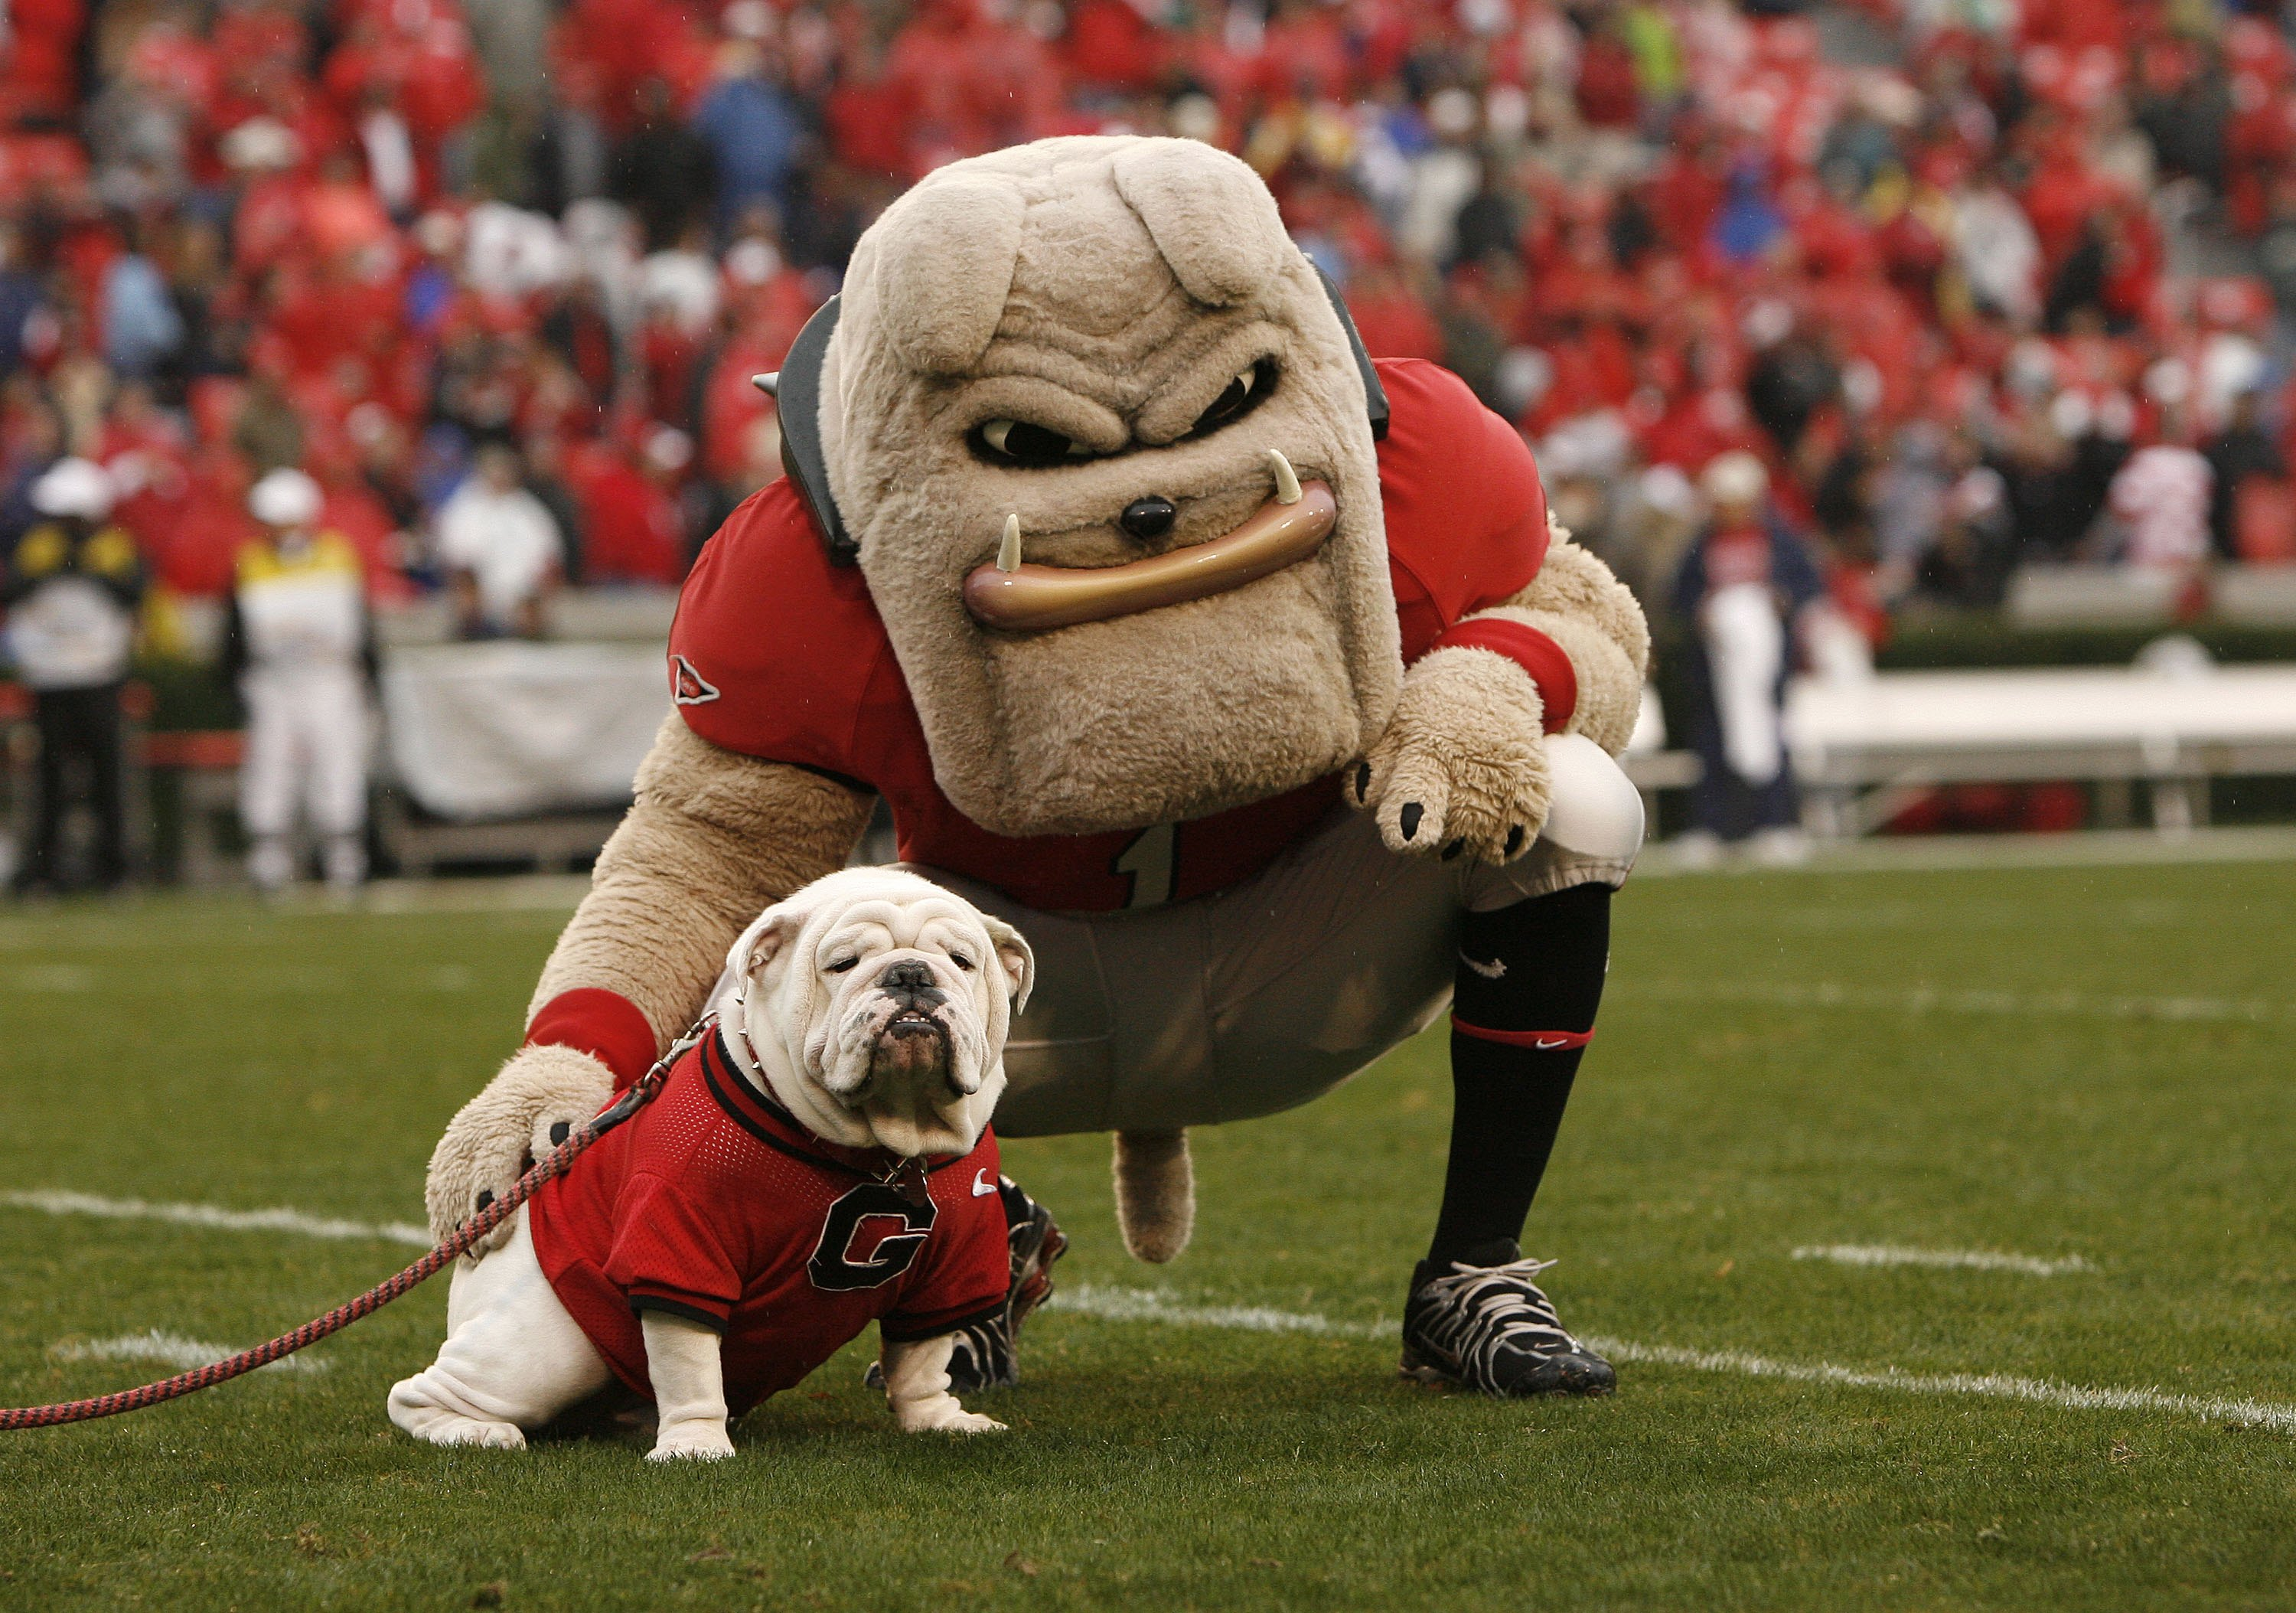 ATHENS, GA - NOVEMBER 29:  Georgia Bulldogs mascots Hairy Dawg (R) and UGA VII pose together for photos before the game against the Georgia Tech Yellow Jackets at Sanford Stadium on November 29, 2008 in Athens, Georgia.  The Yellow Jackets defeated the Bu